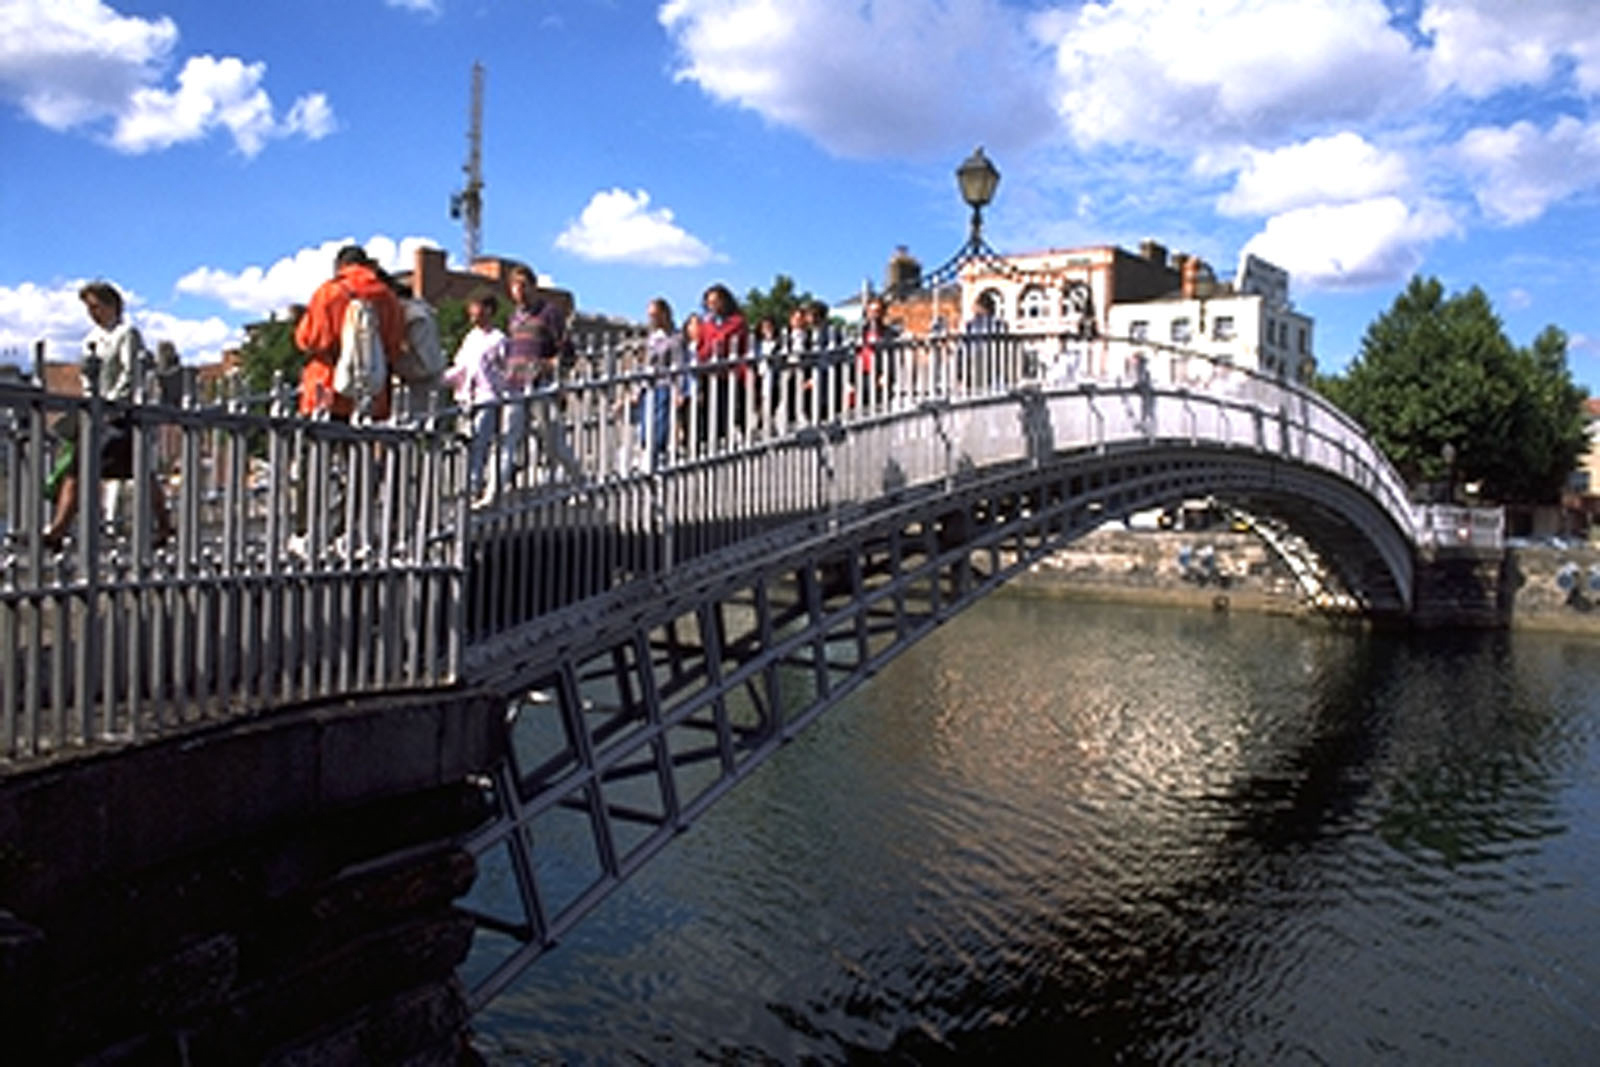 The Ha'Penny Bridge, Dublin. Ireland